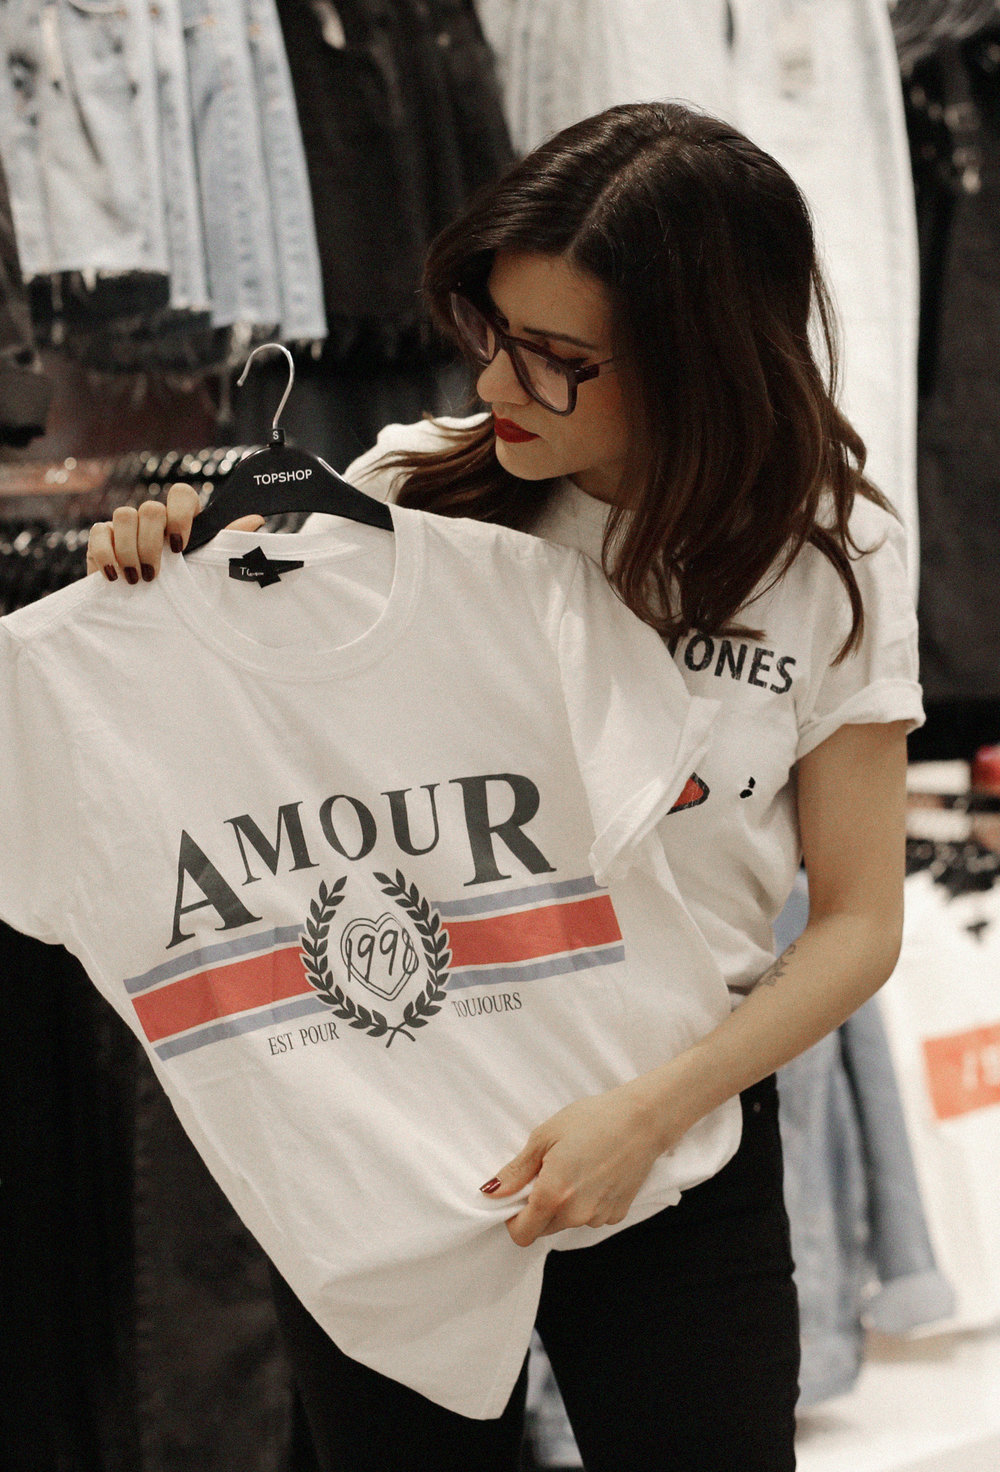 3 Affordable Graphic Tees For Fall from Topshop_8604.jpg